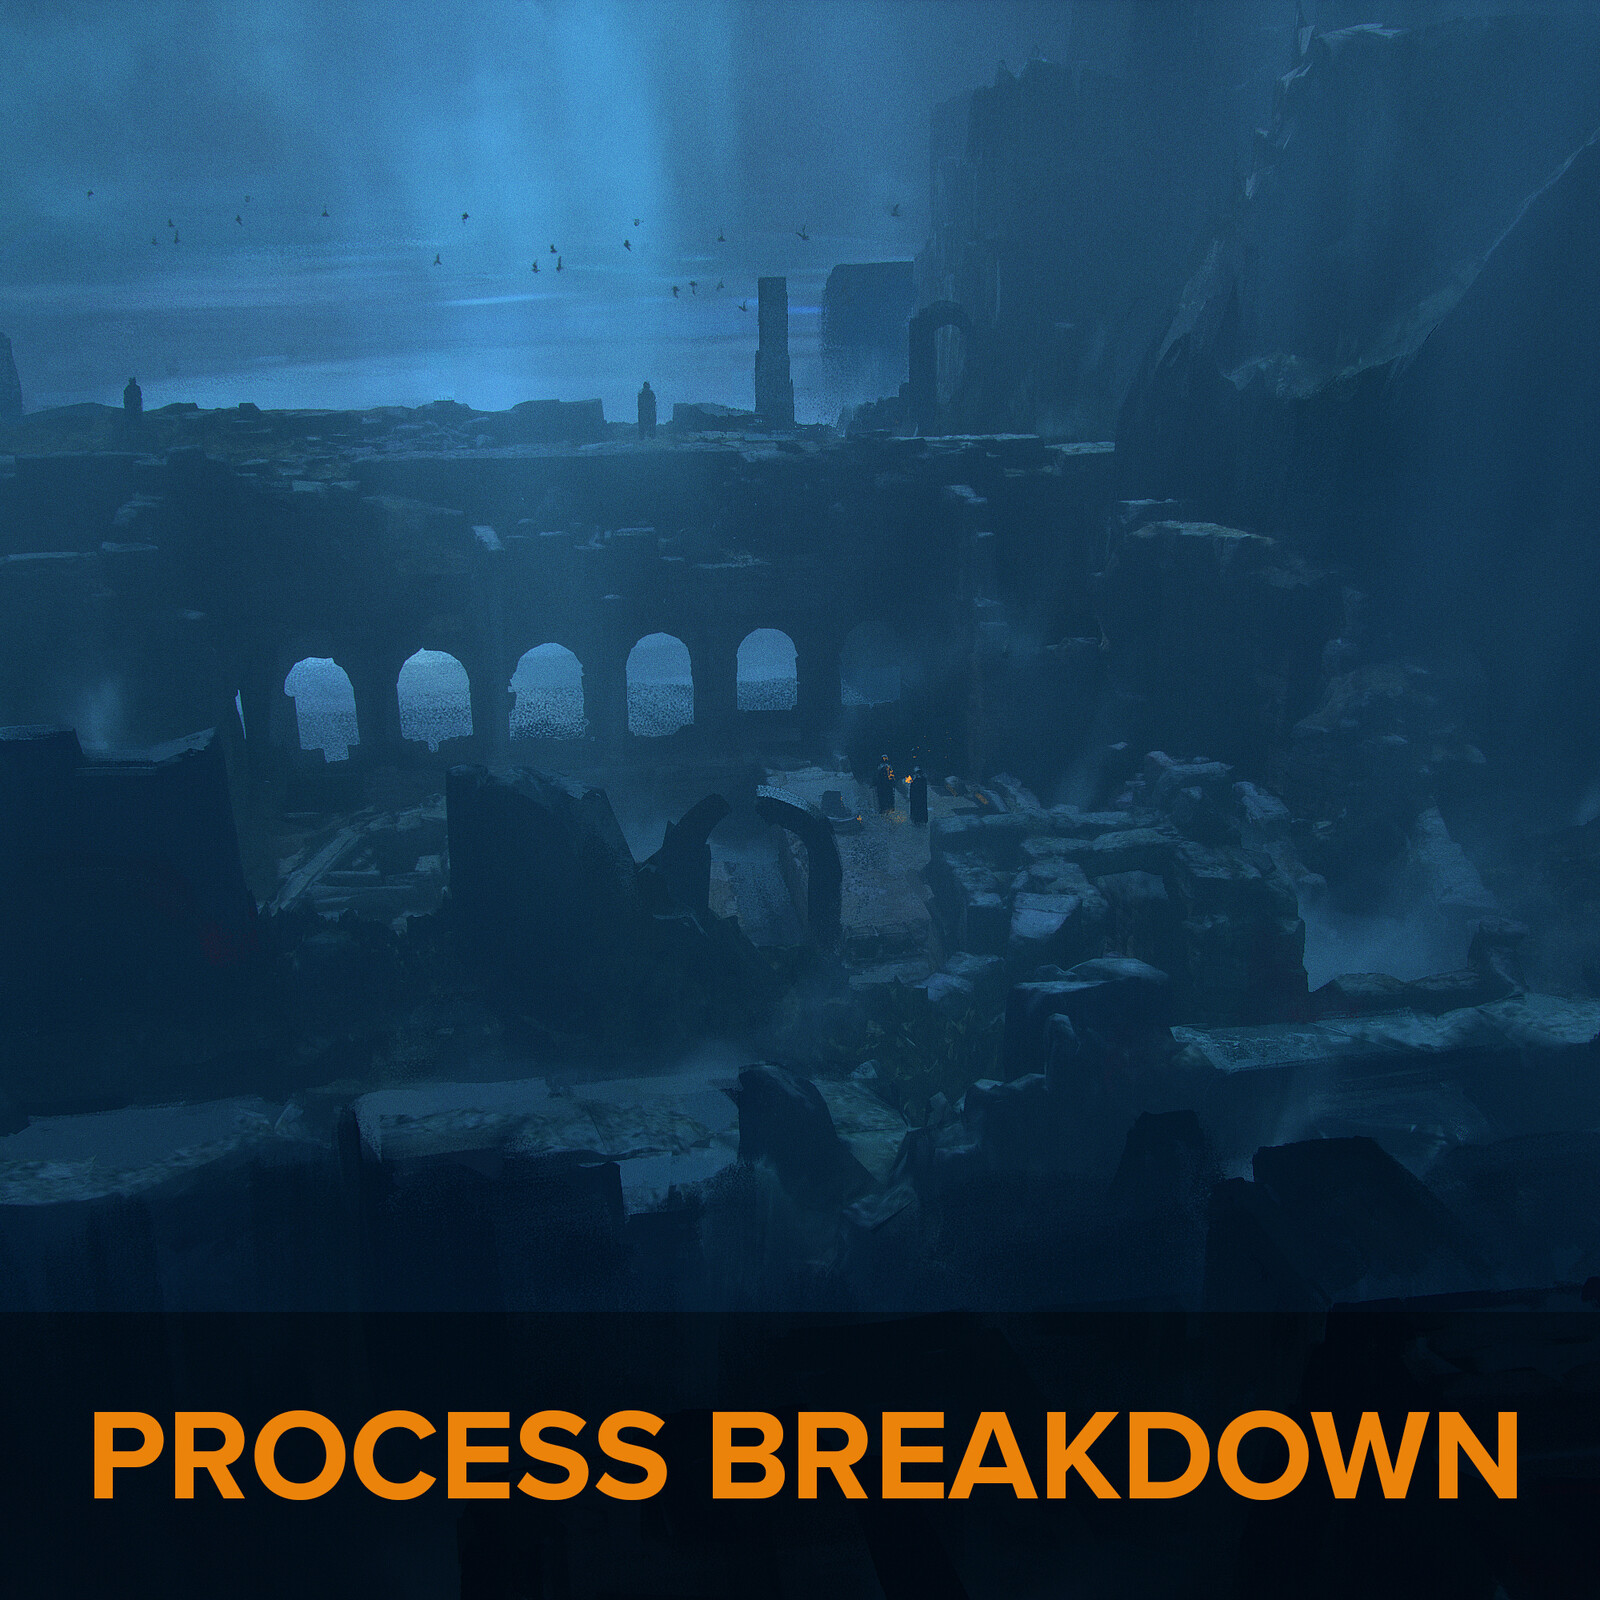 Daily sketches - Process Breakdown